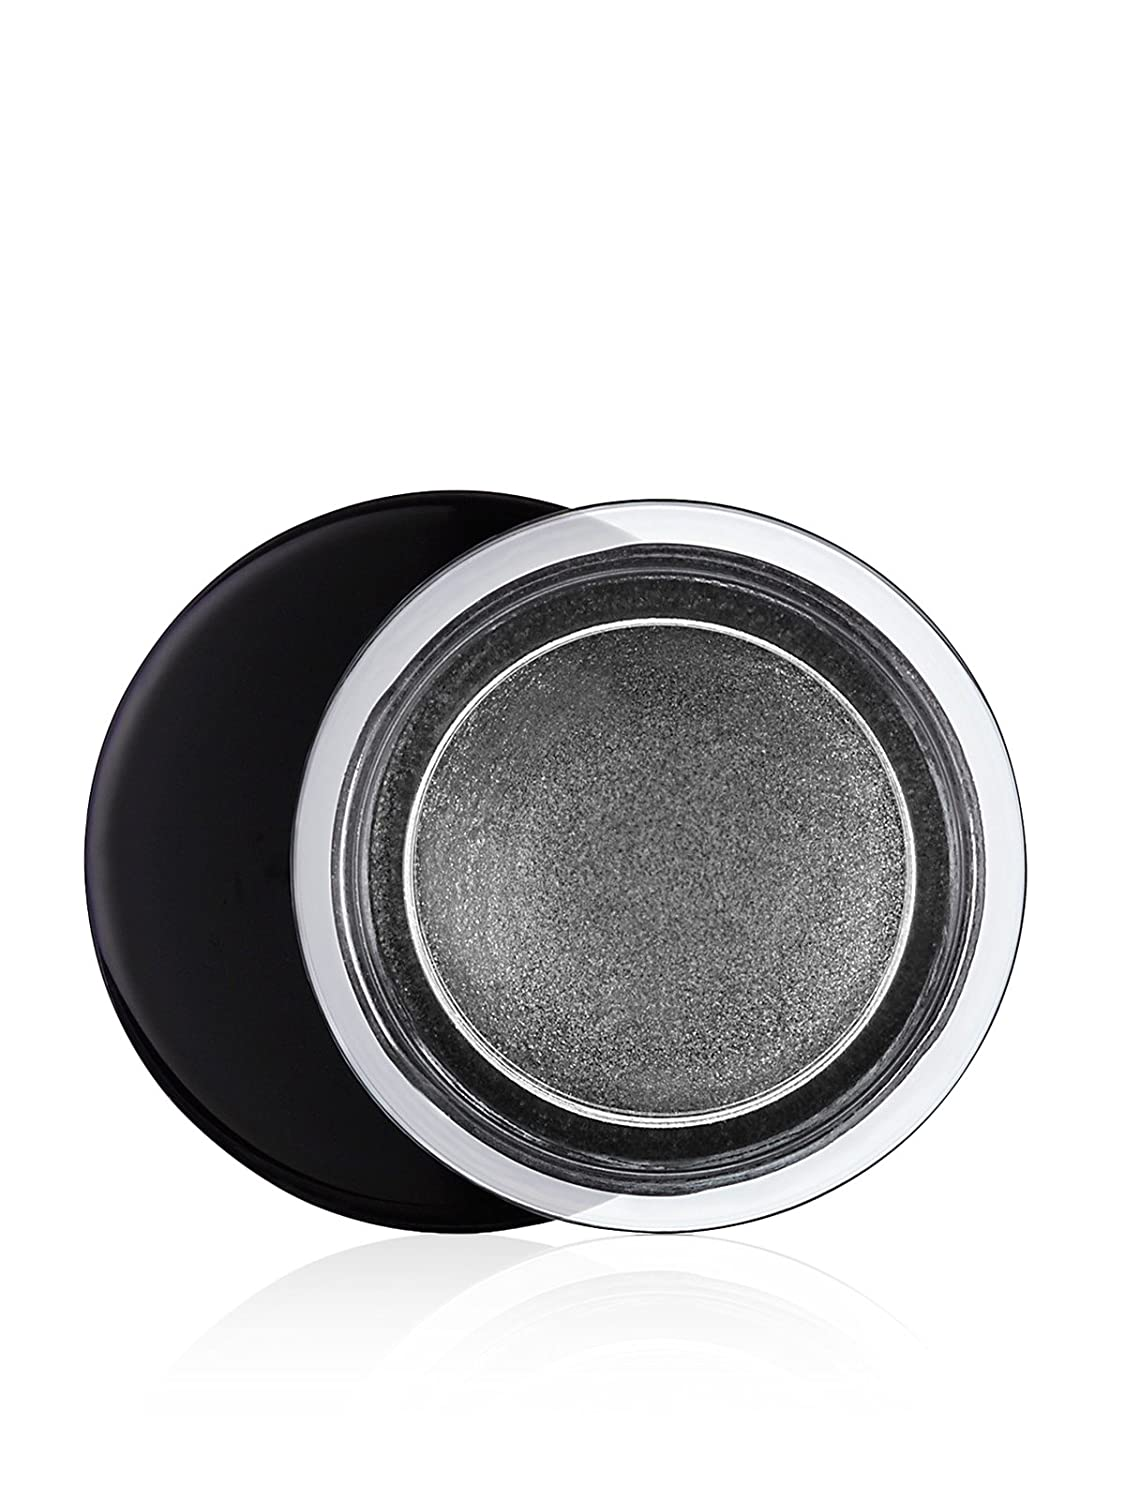 Estee Lauder Pure stay on Paint Shade Sinister